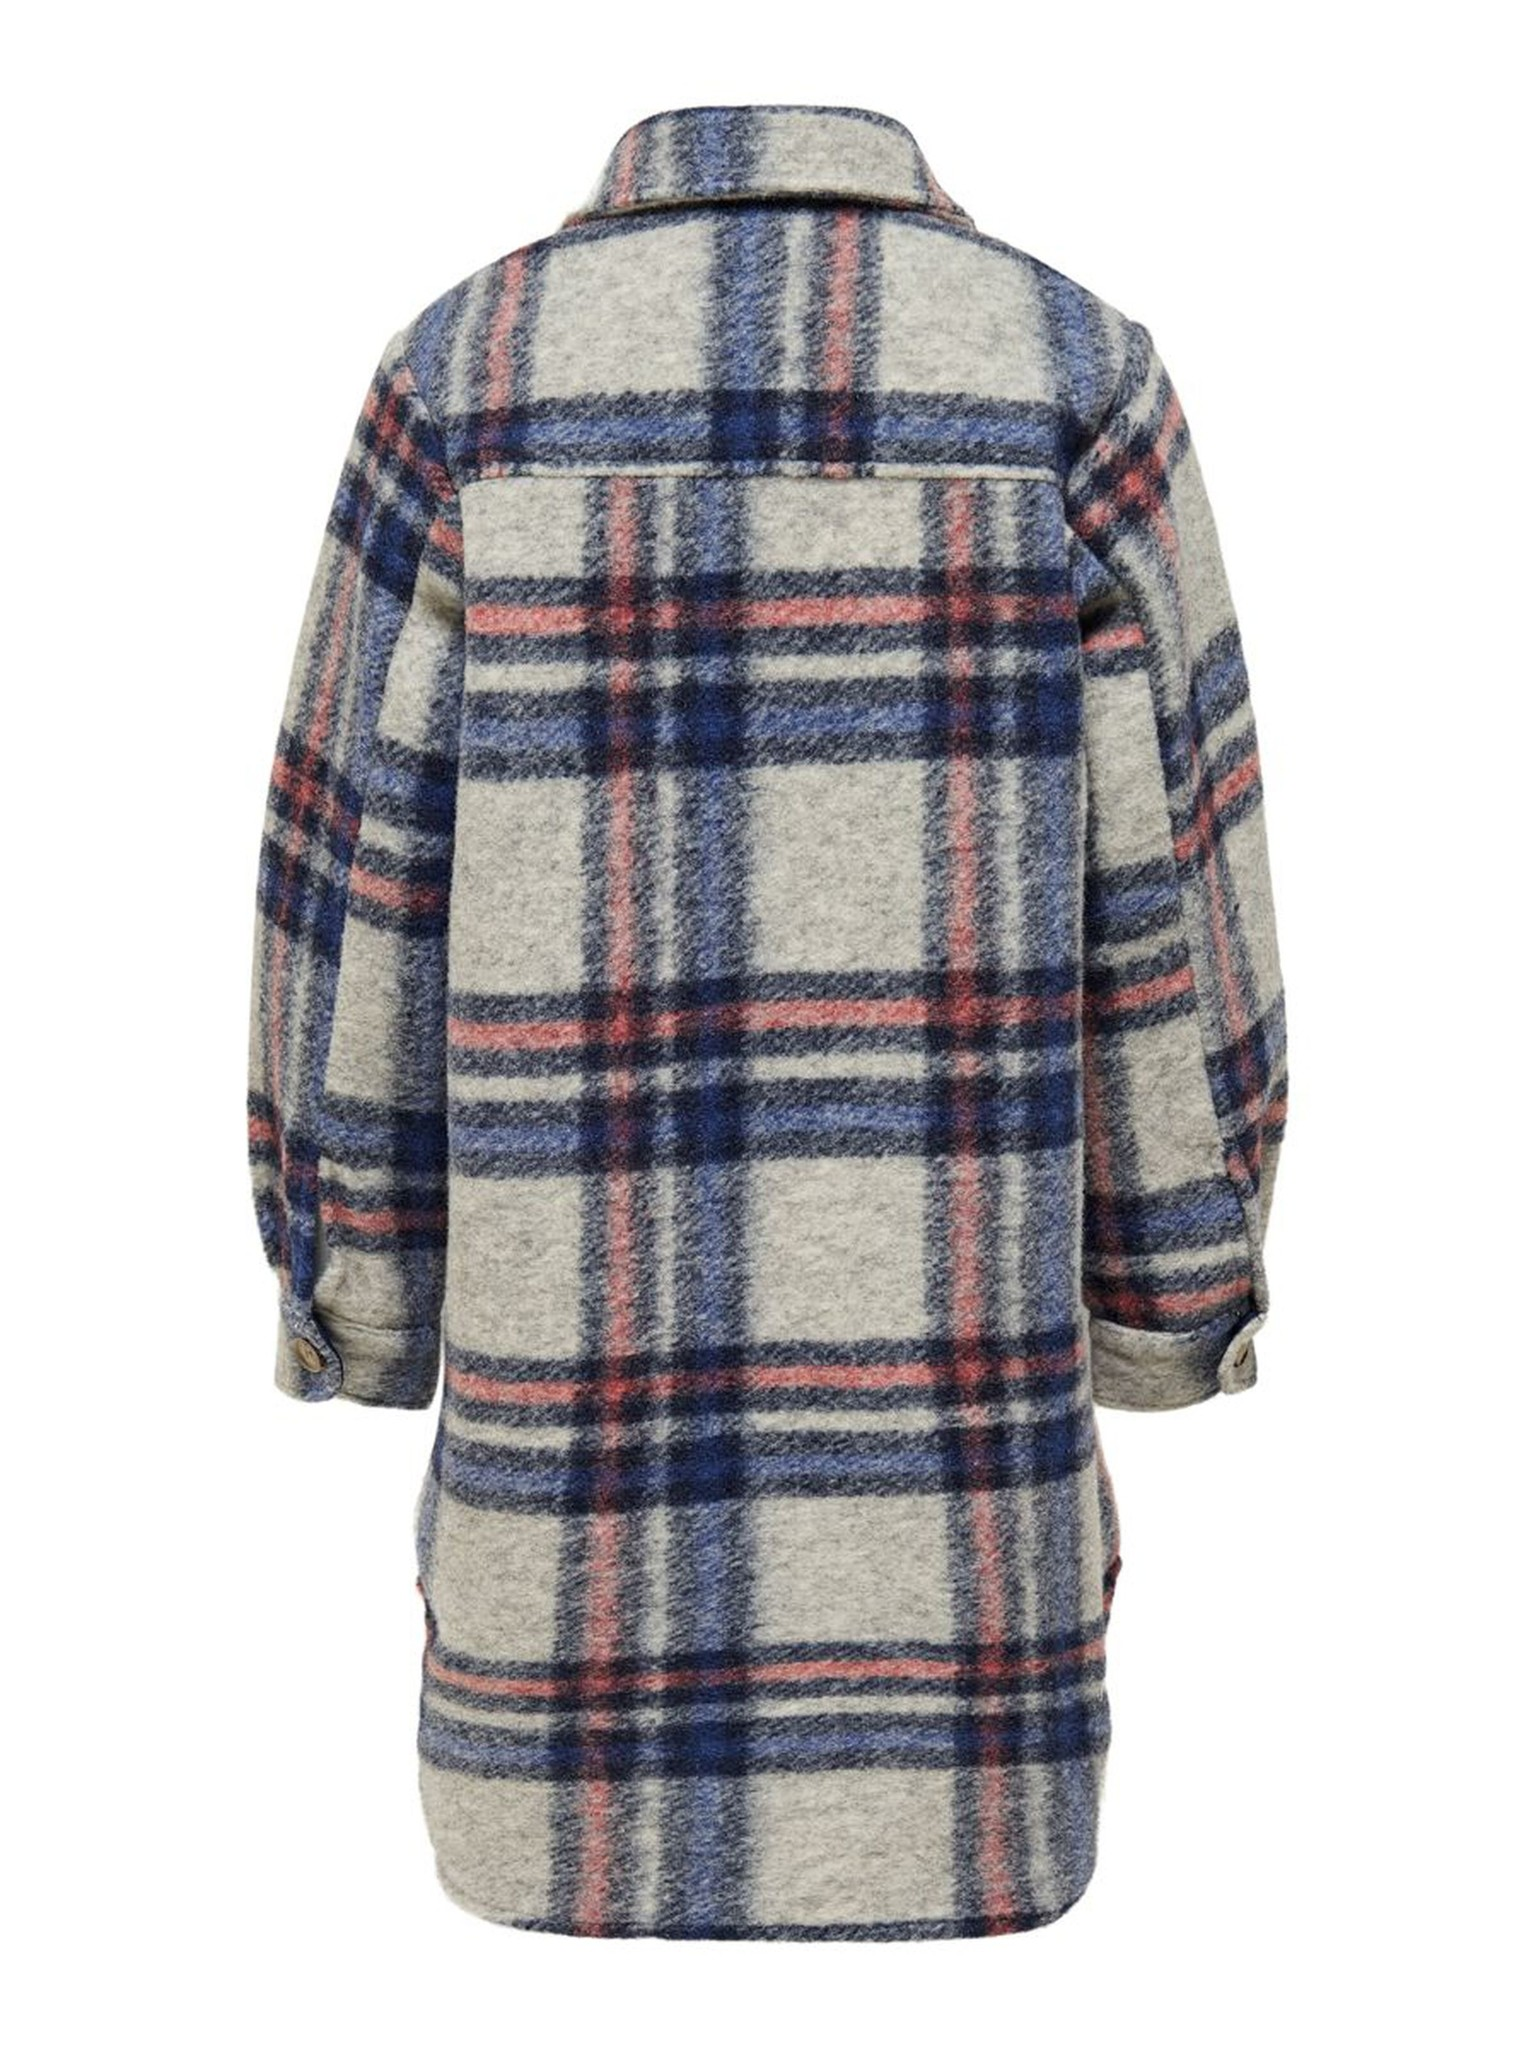 ONLY manteau loulou-2